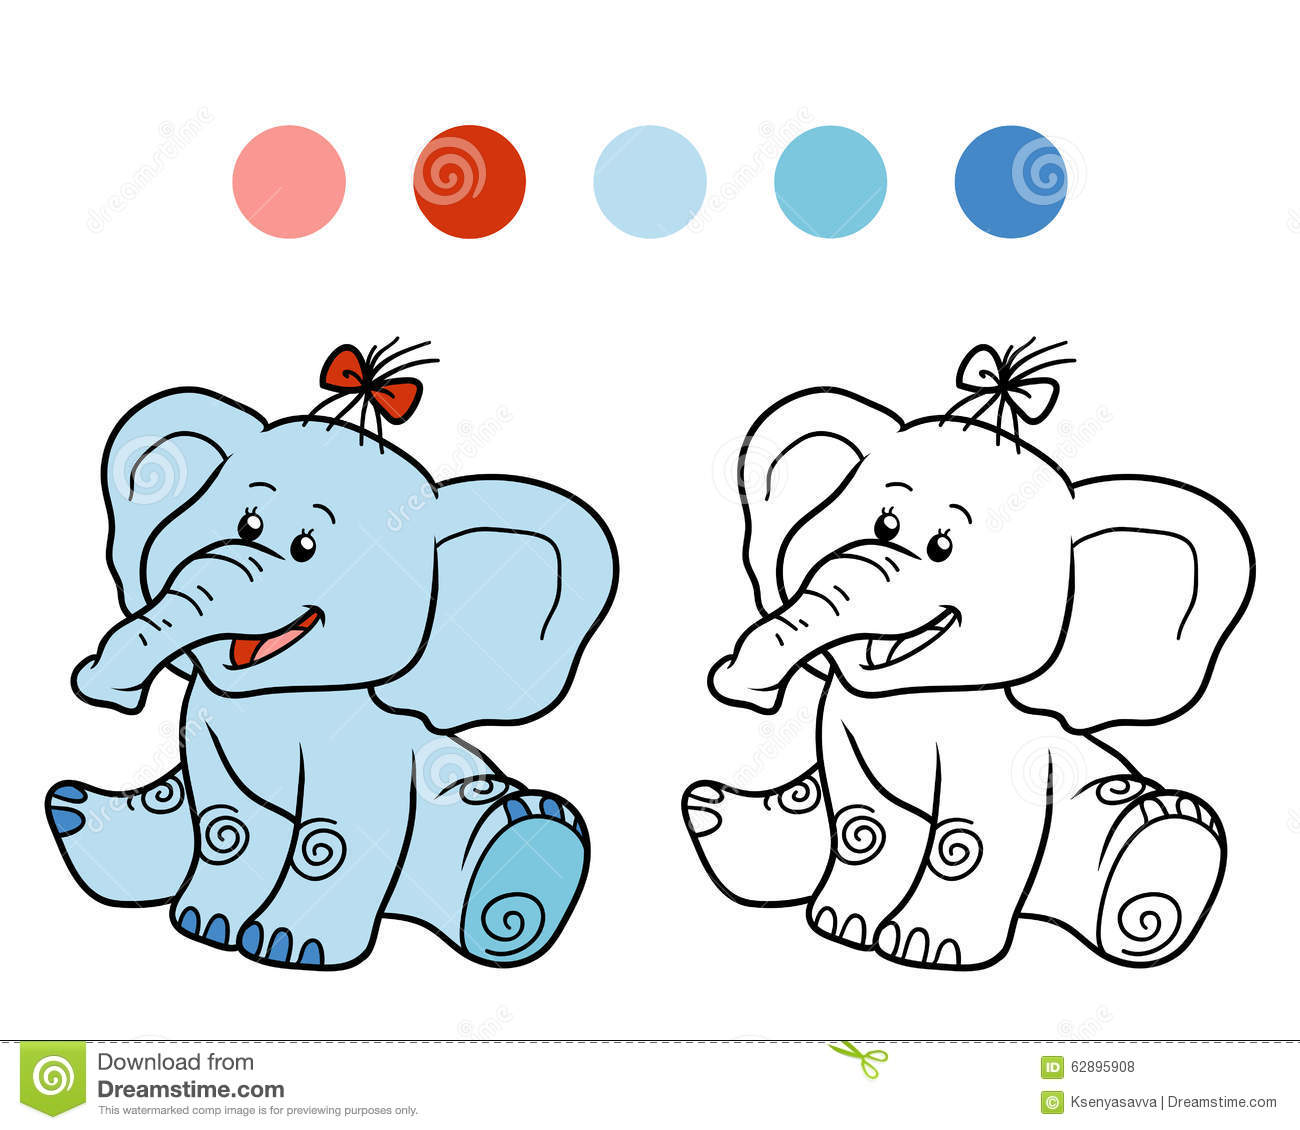 Royalty Free Vector Download Coloring Book For Children